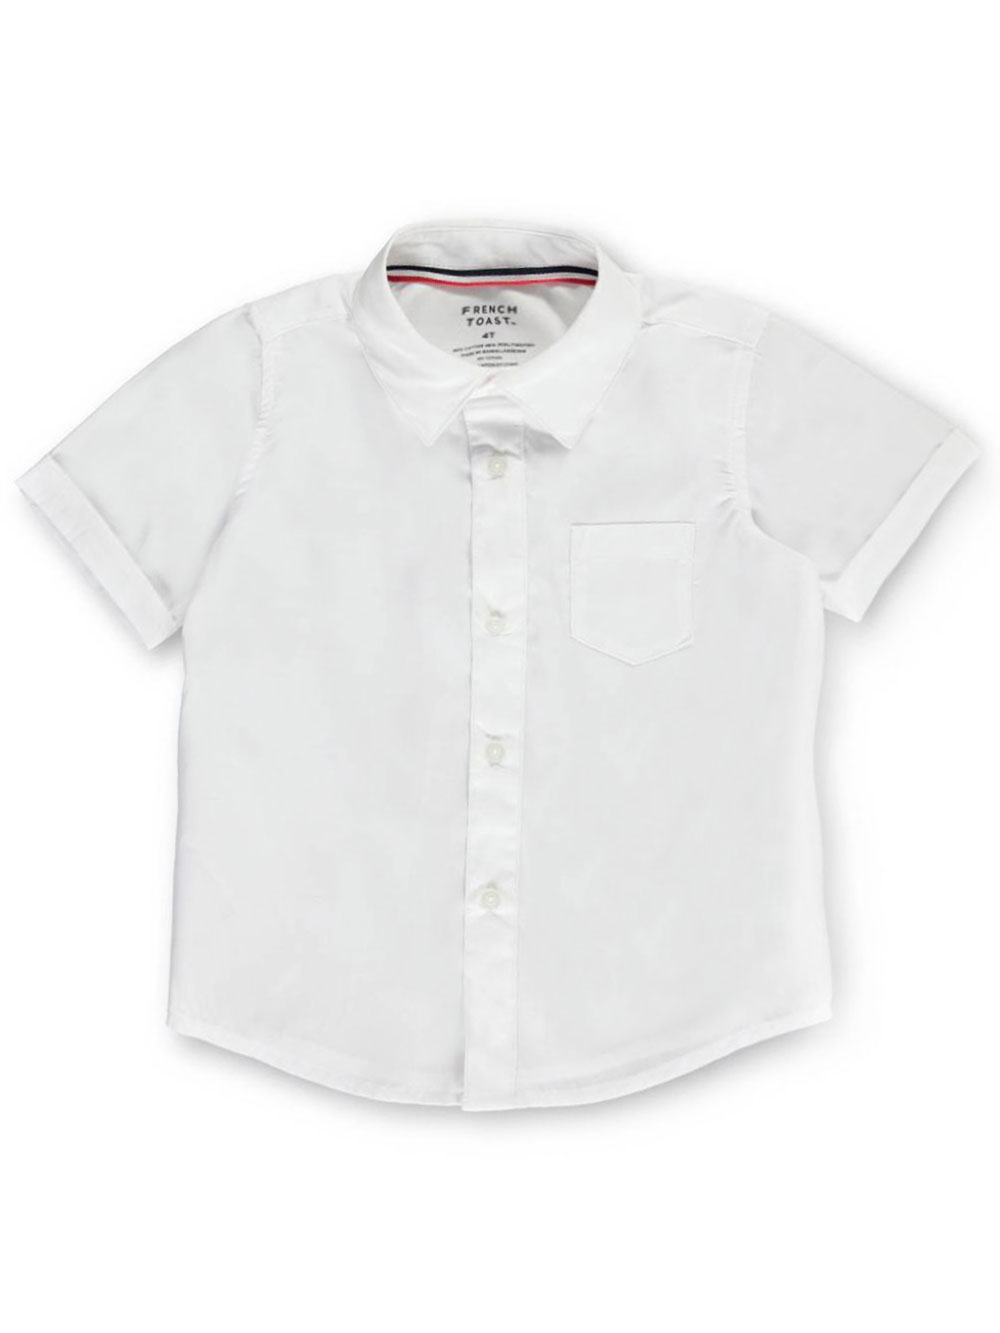 French Toast School Uniform Little Boys' Toddler S/S Button-Down Shirt (Sizes 2T - 4T) - white, 4t